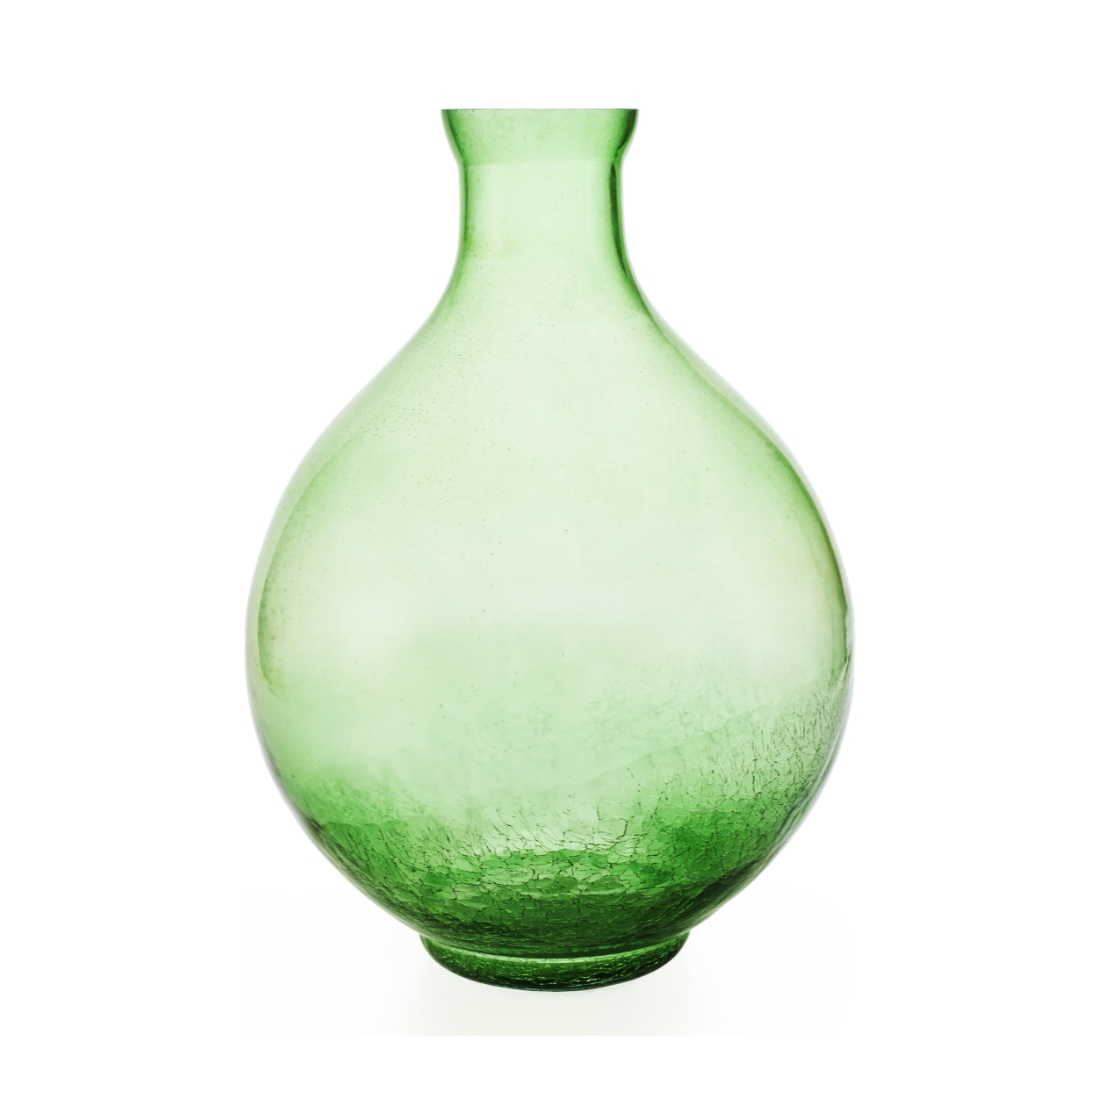 Giana Crackle Vase 20 cm Small Green Glass Vases in Green Colour by Living Essence